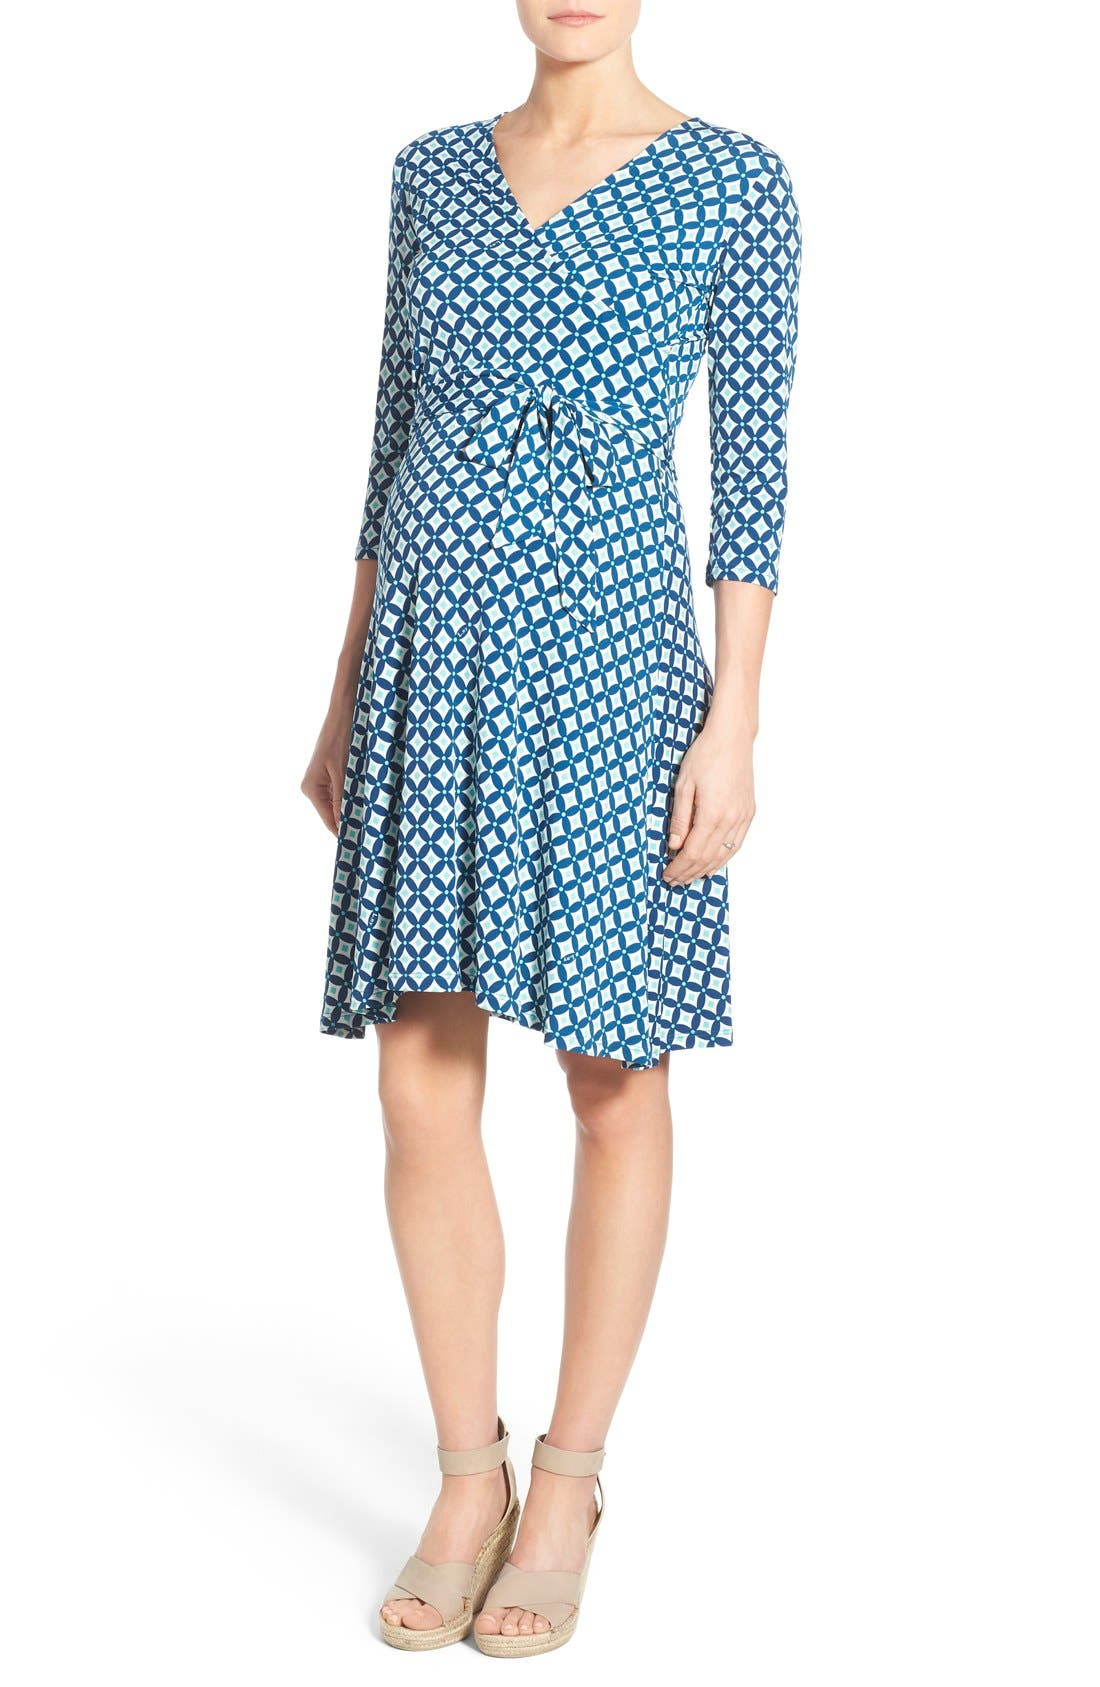 LEOTA Faux Wrap Maternity Dress